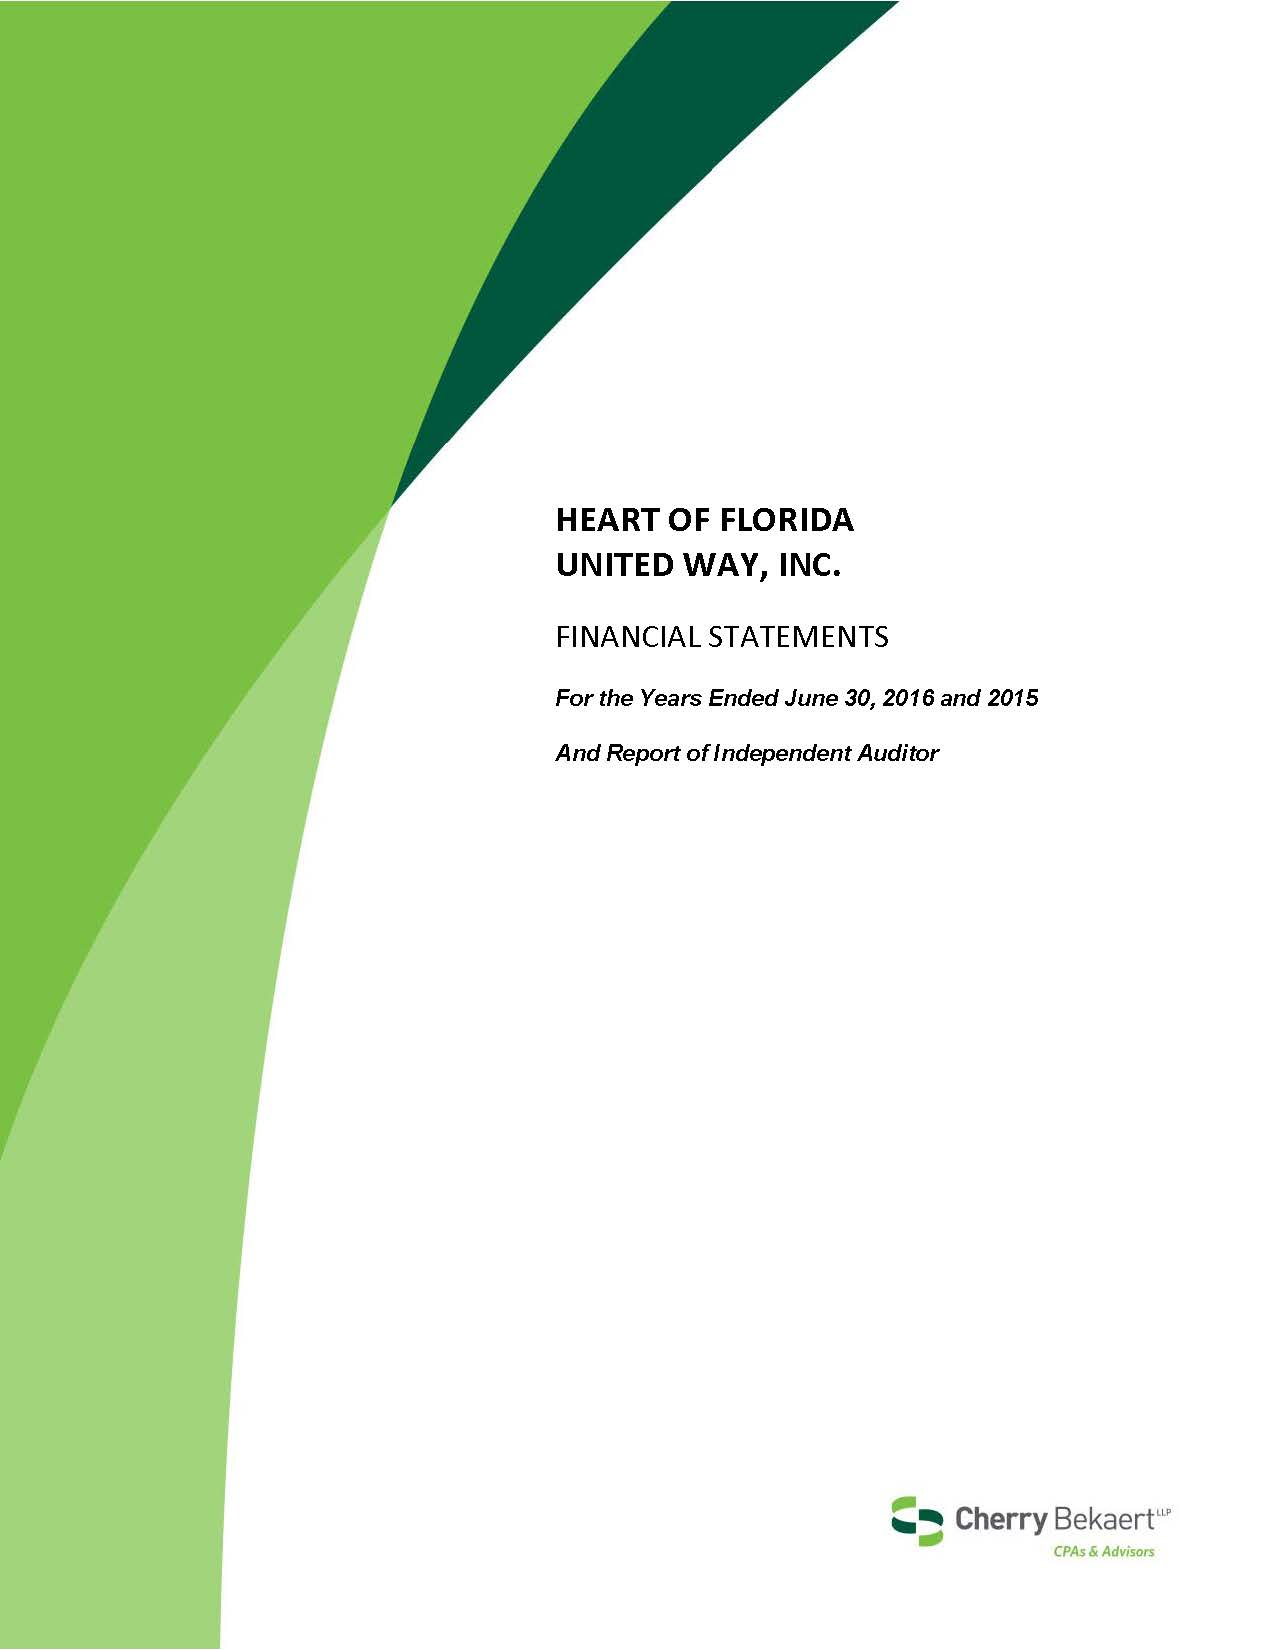 Our Financials - Heart of Florida United Way